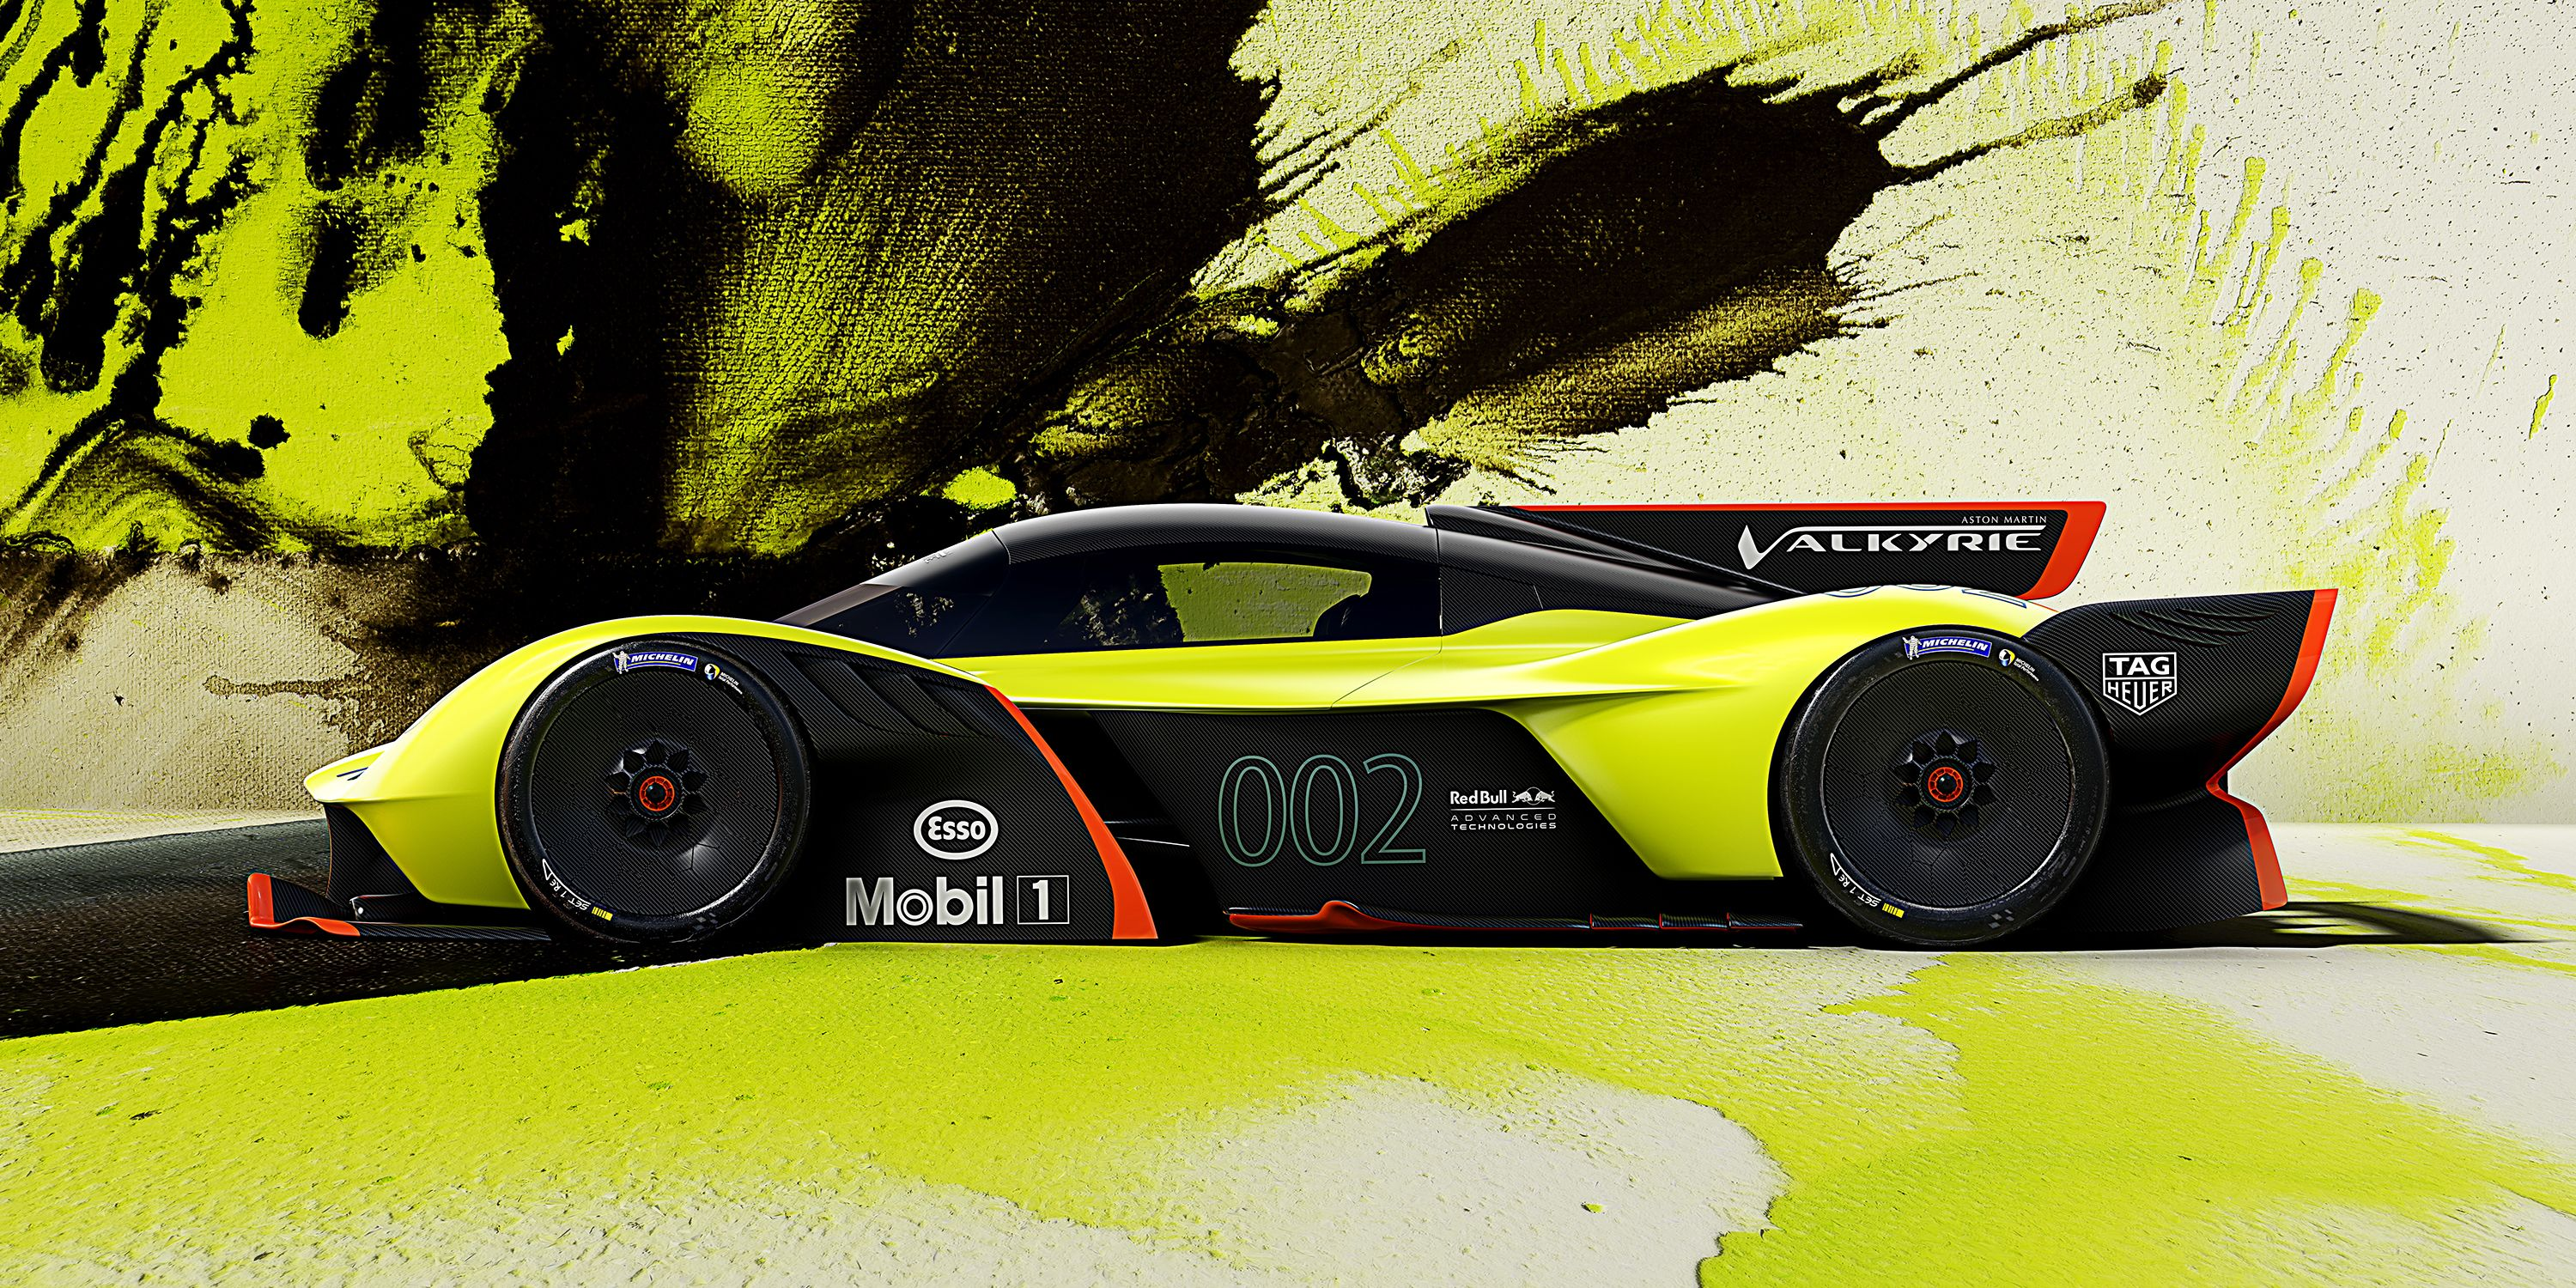 red bull could run something based on the aston martin valkyrie at